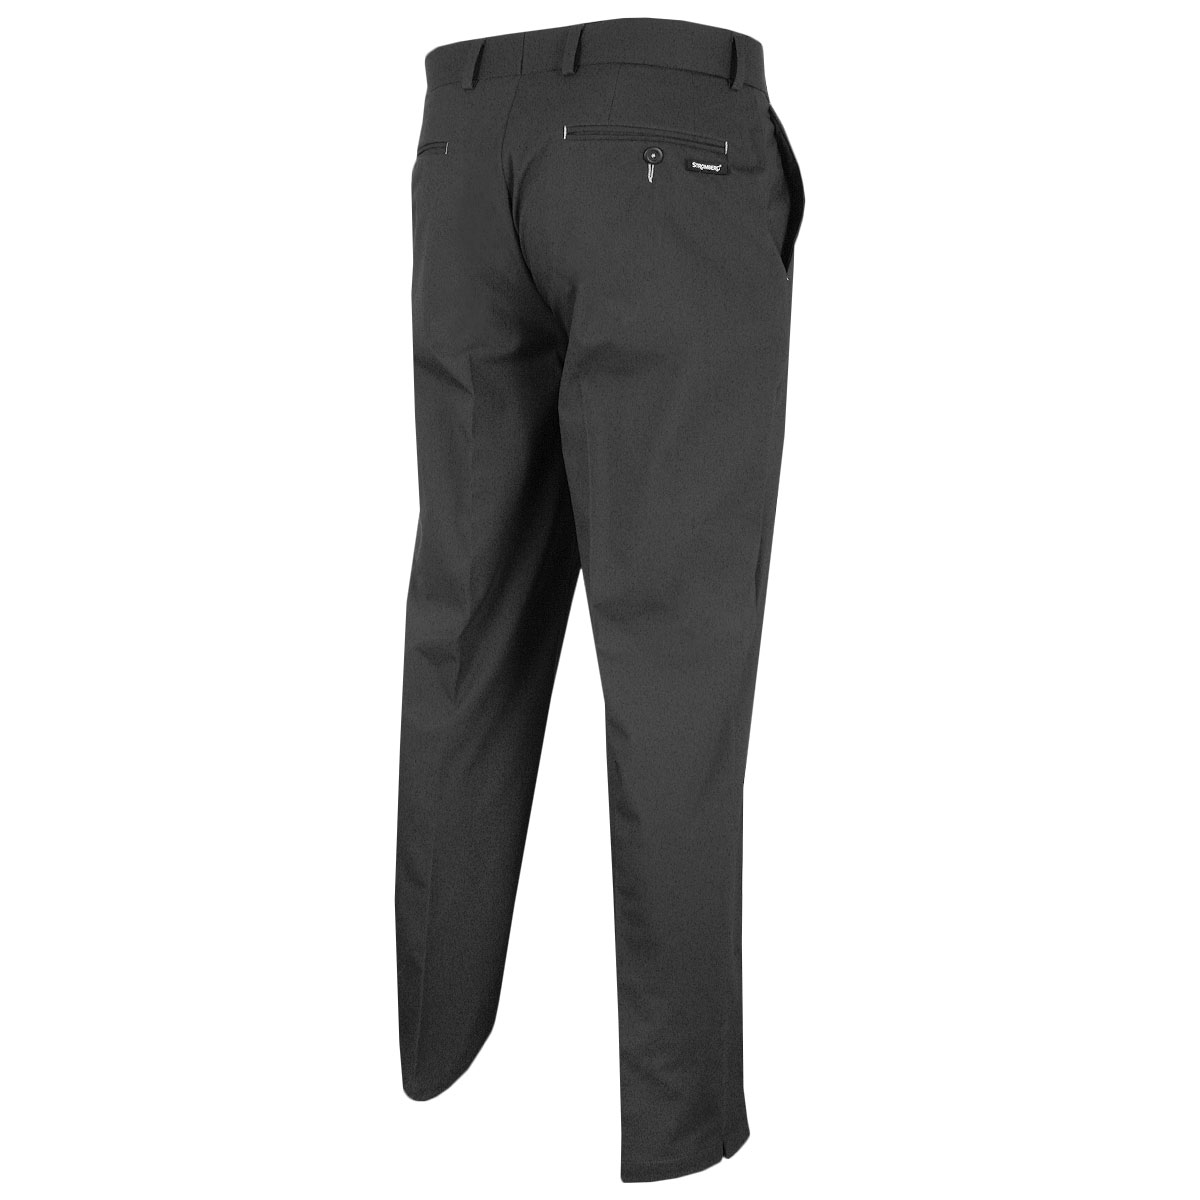 Stromberg-Mens-Wintra-2-0-Winter-Tech-Waterproof-Golf-Trousers-29-OFF-RRP thumbnail 9